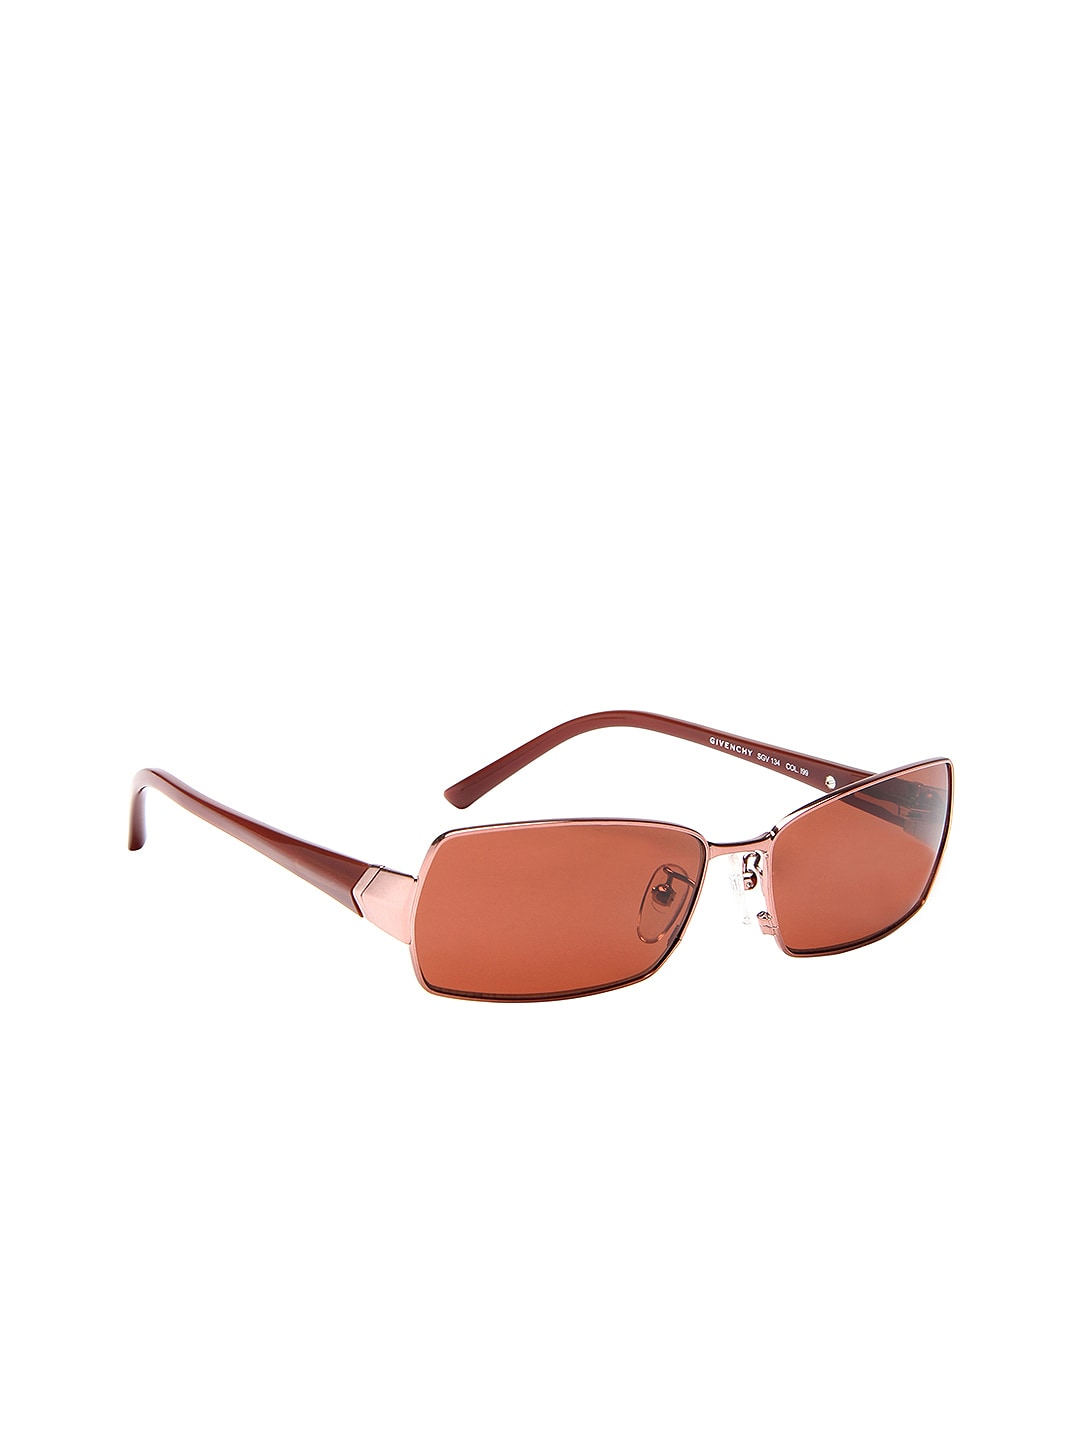 Givenchy Givenchy Women Sunglasses SGV 131 COL 0199 (Multicolor)